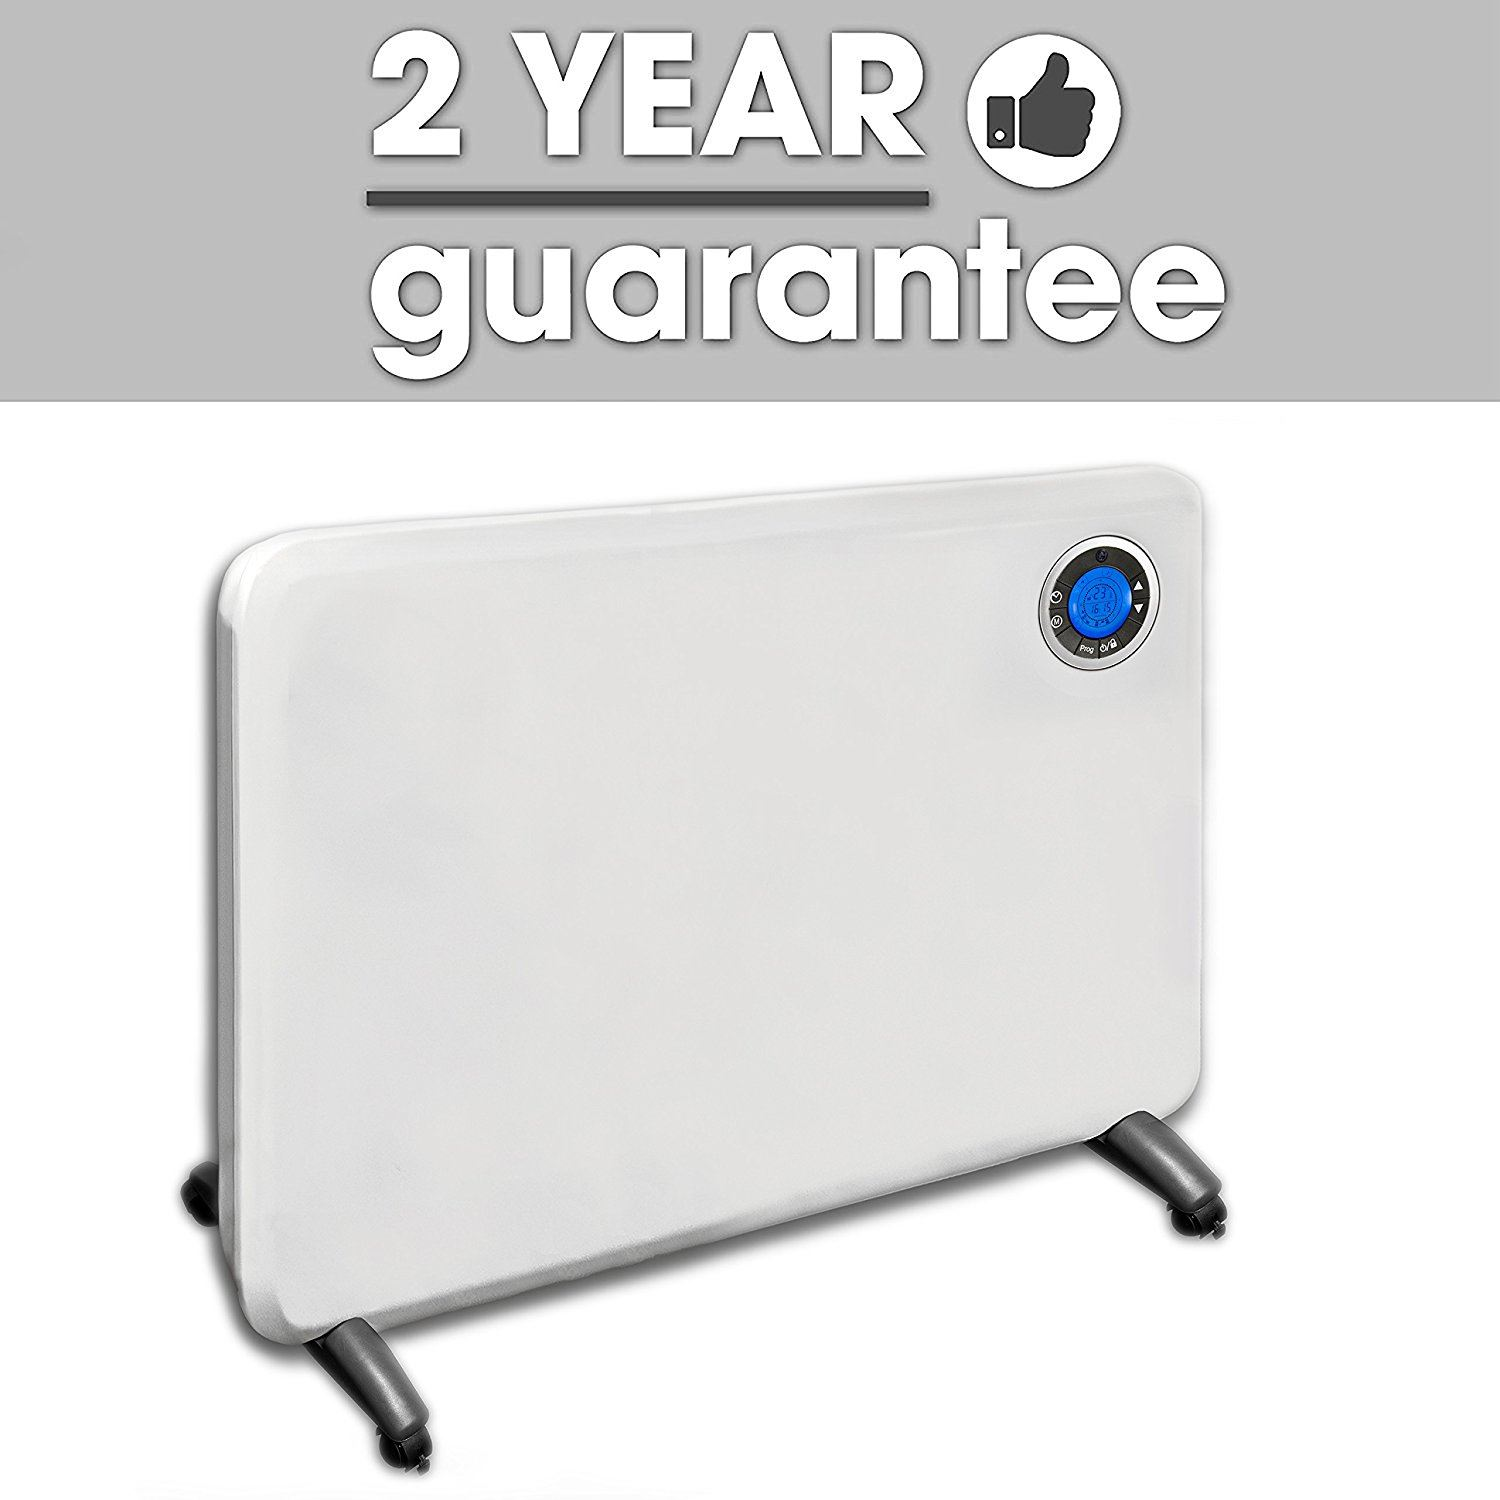 ELECTRIC PANEL HEATER RADIATOR THERMOSTAT WITH TIMER WALL ...